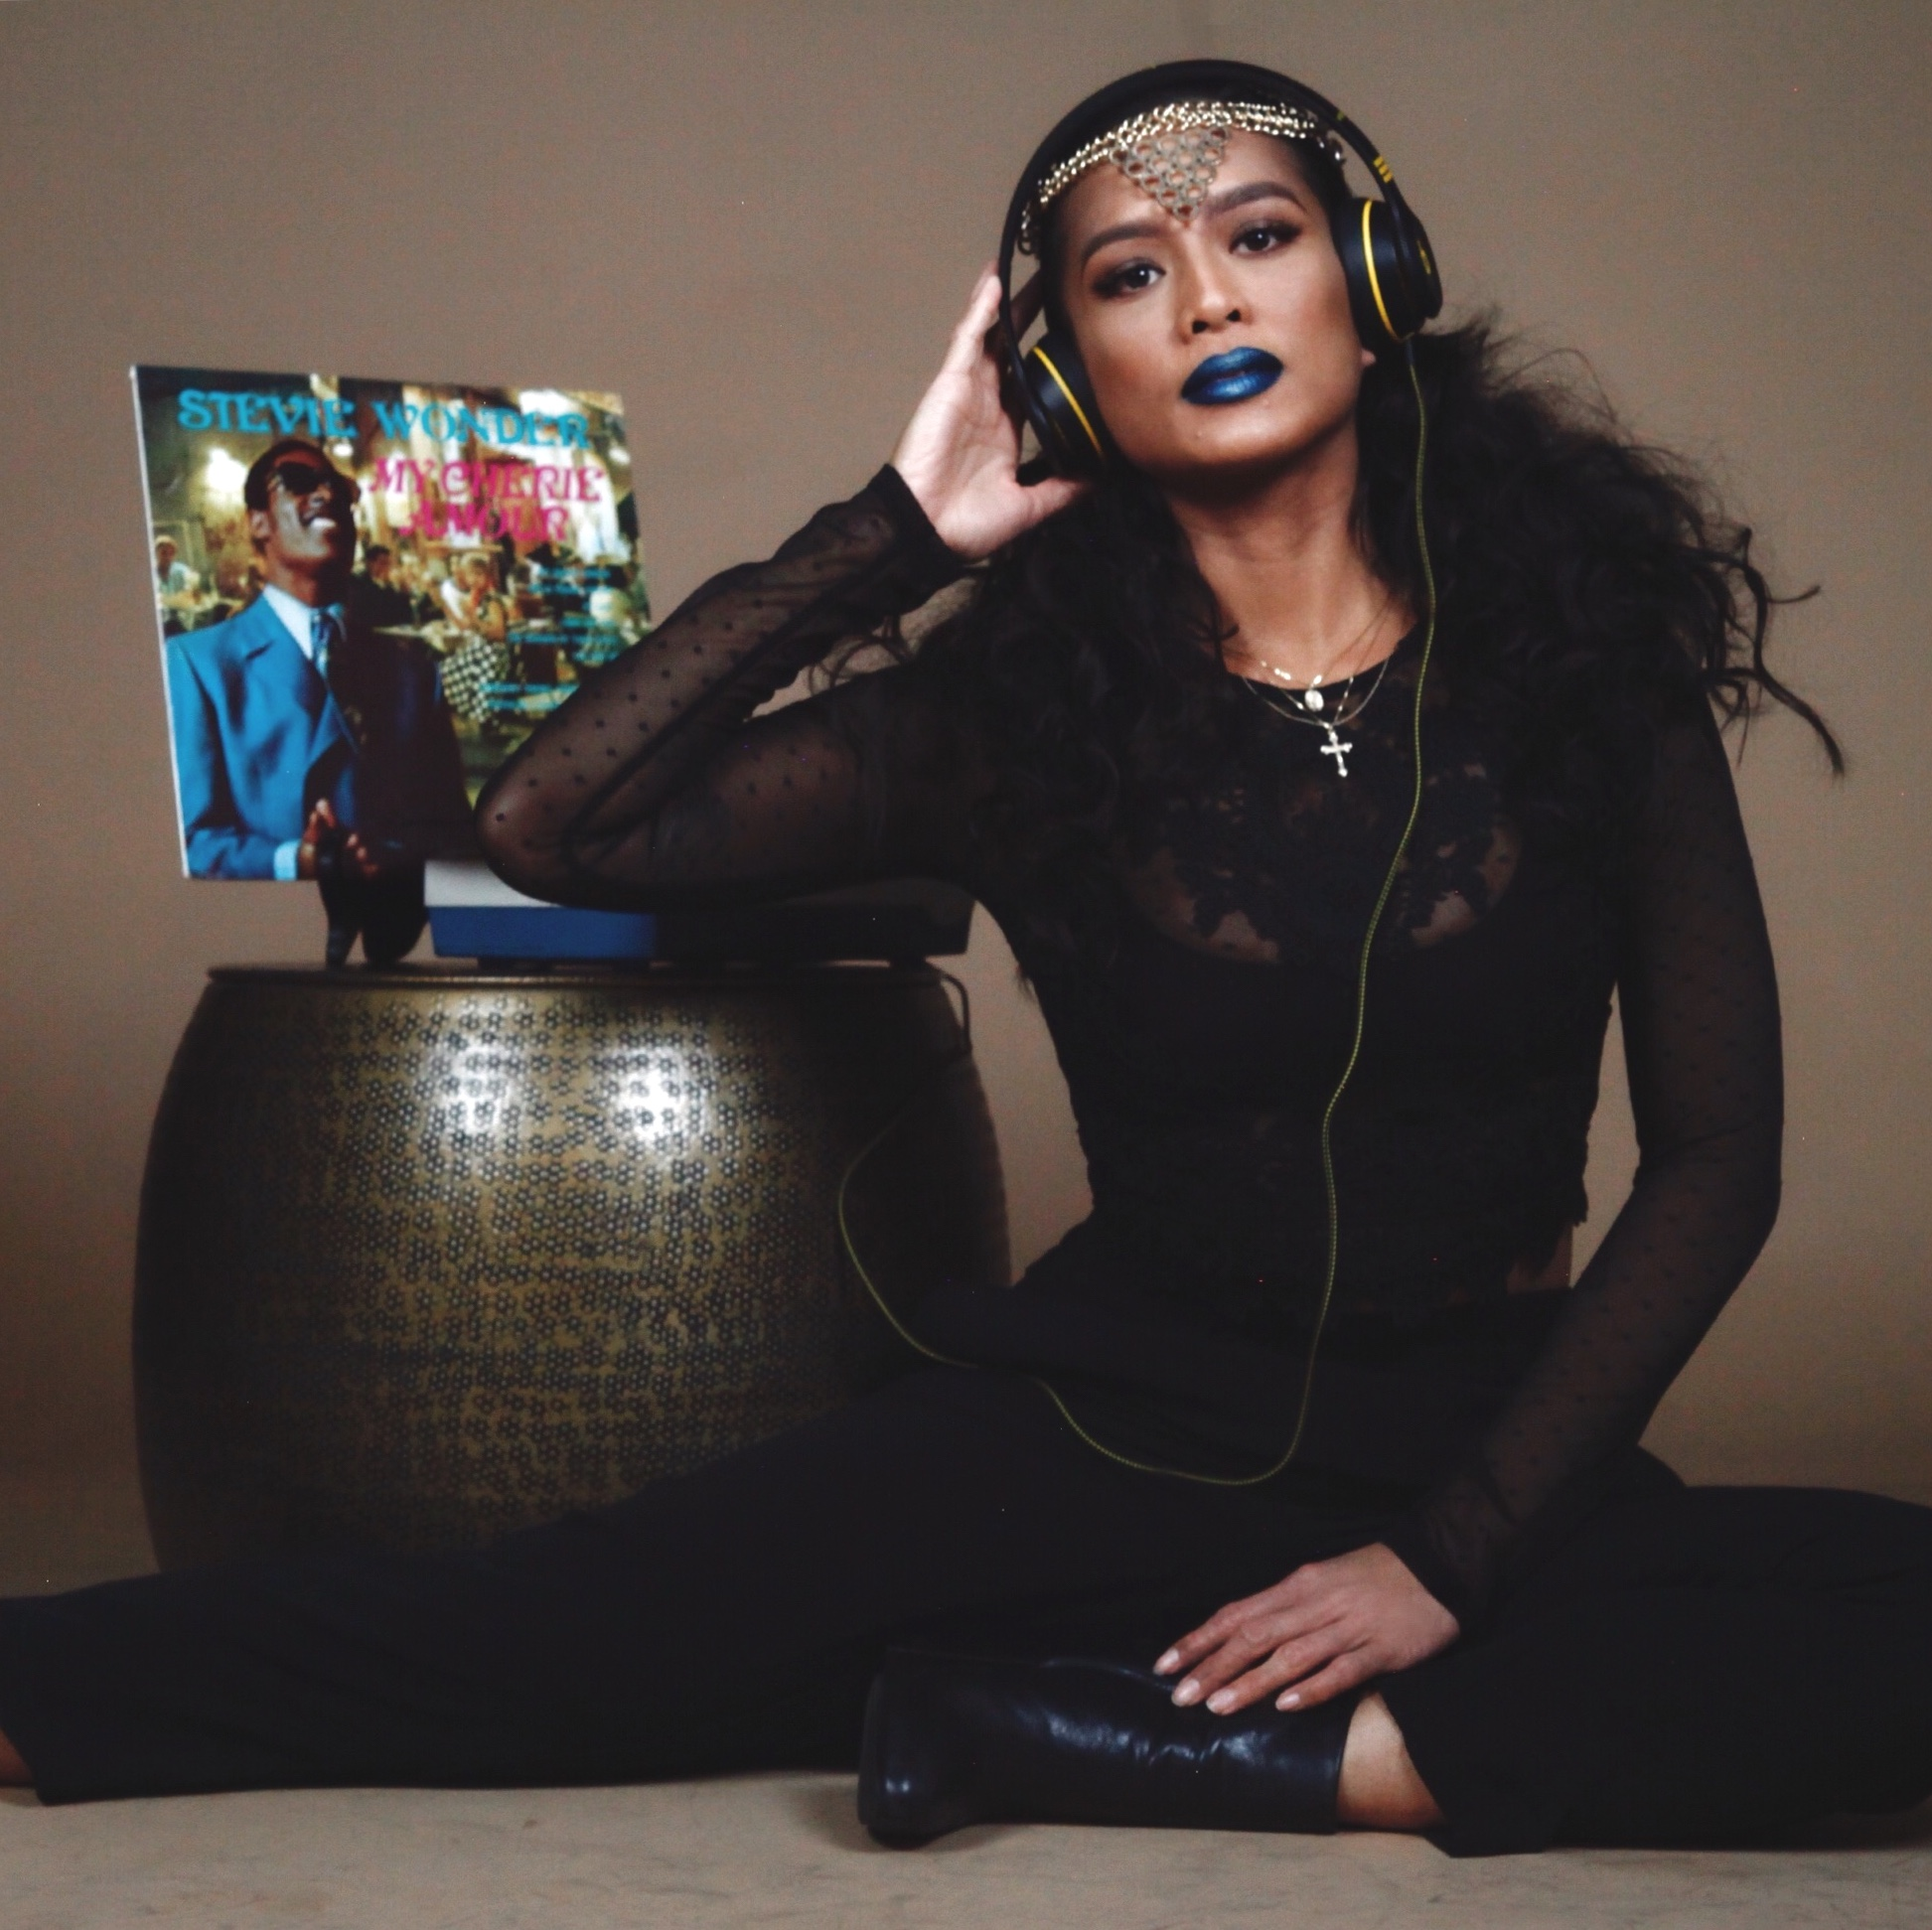 """Sherri Silva - Artform Artist, Sherri Silva is inspired to rise into her artistry through her passion along with the amount of creativity and aspiration she is surrounded by here at The Artform Studio.Digging in the Crates of @the_artform_studioSherri finds and plays Stevie Wonder's 'Cherie Amour' while she cuts hair """"....because of its sentimental value. I'll continue to hold dear to this song, from childhood to adulthood..."""" Sherri truly finds that hair, make up, and music are all forms of art. They are outlets used for artists to create in whichever form of artistry they choose."""